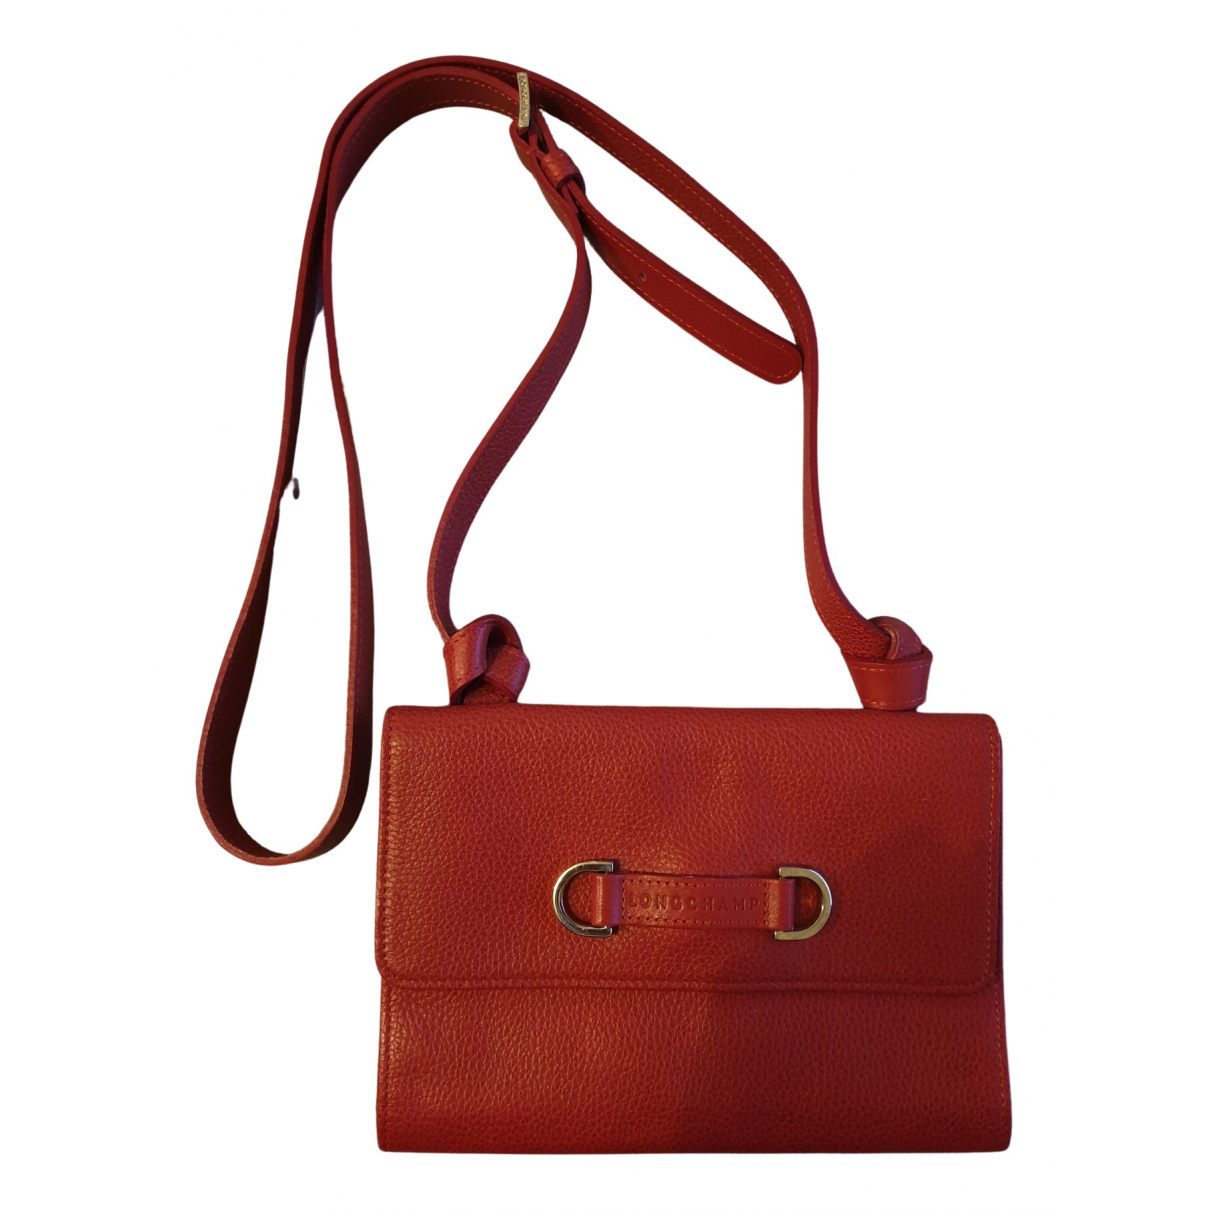 Longchamp \N Clutch in  Bordeauxrot Lackleder